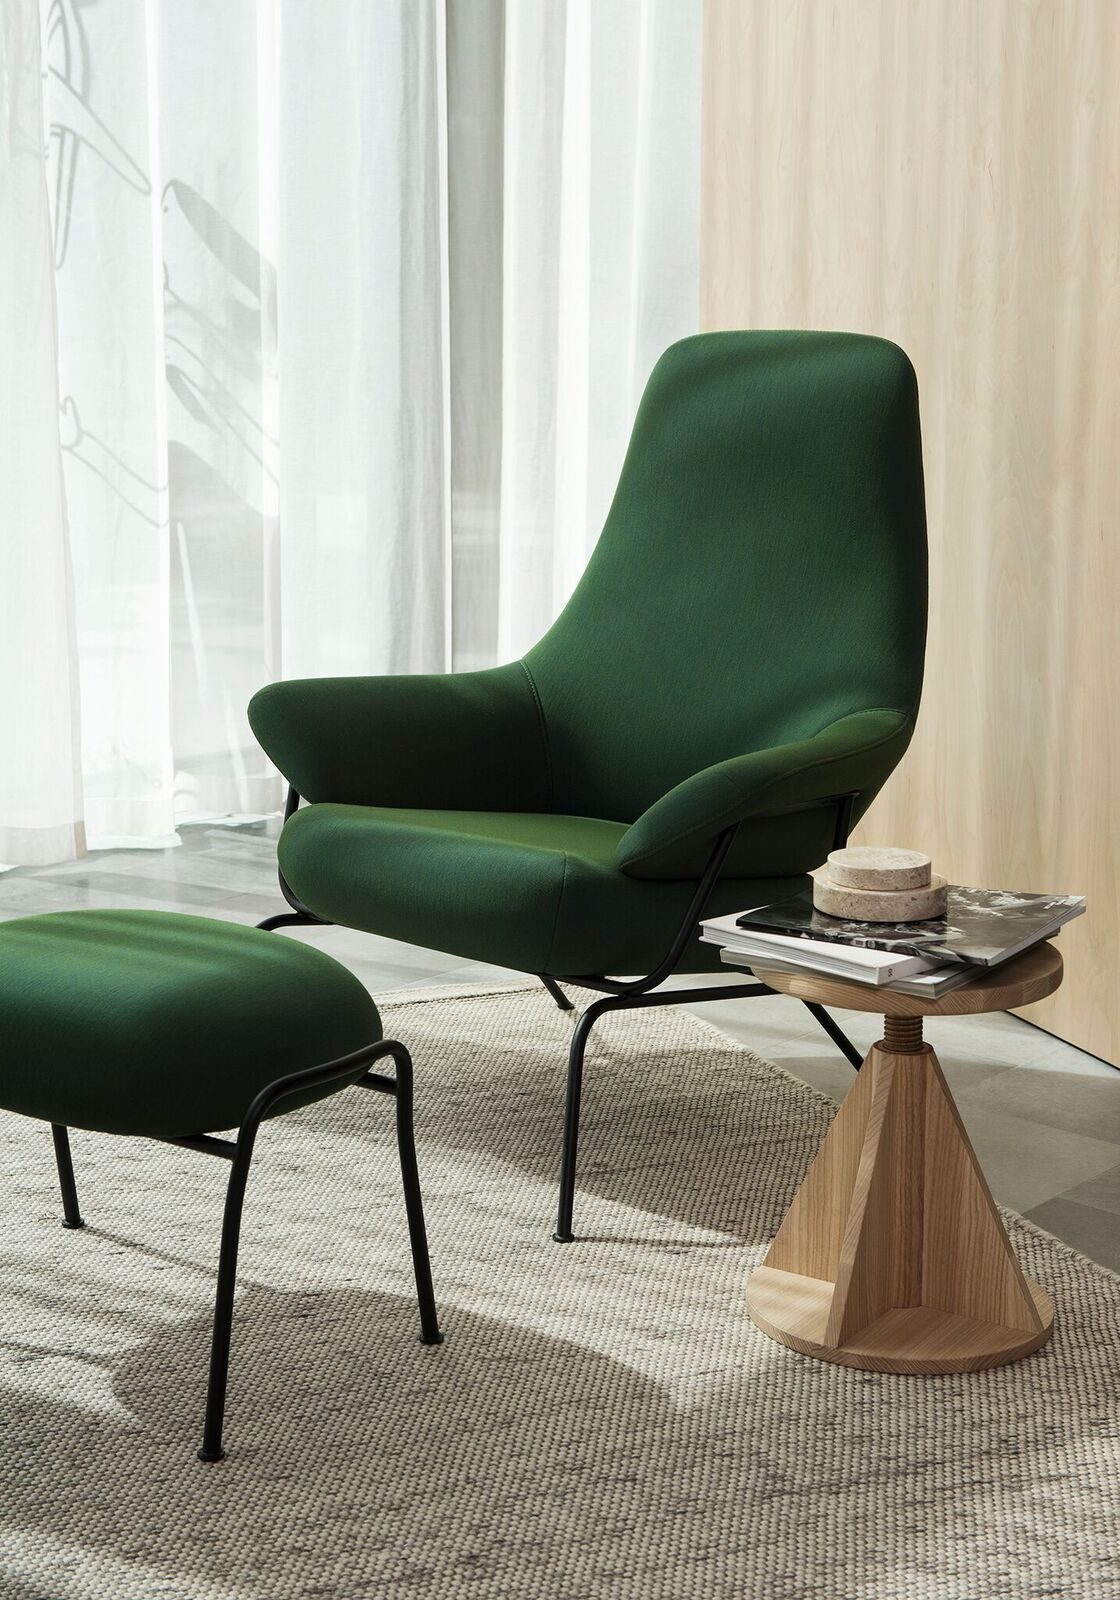 Bon DOMINO:This New Jewel Toned Furniture Collection Is Fall Perfection